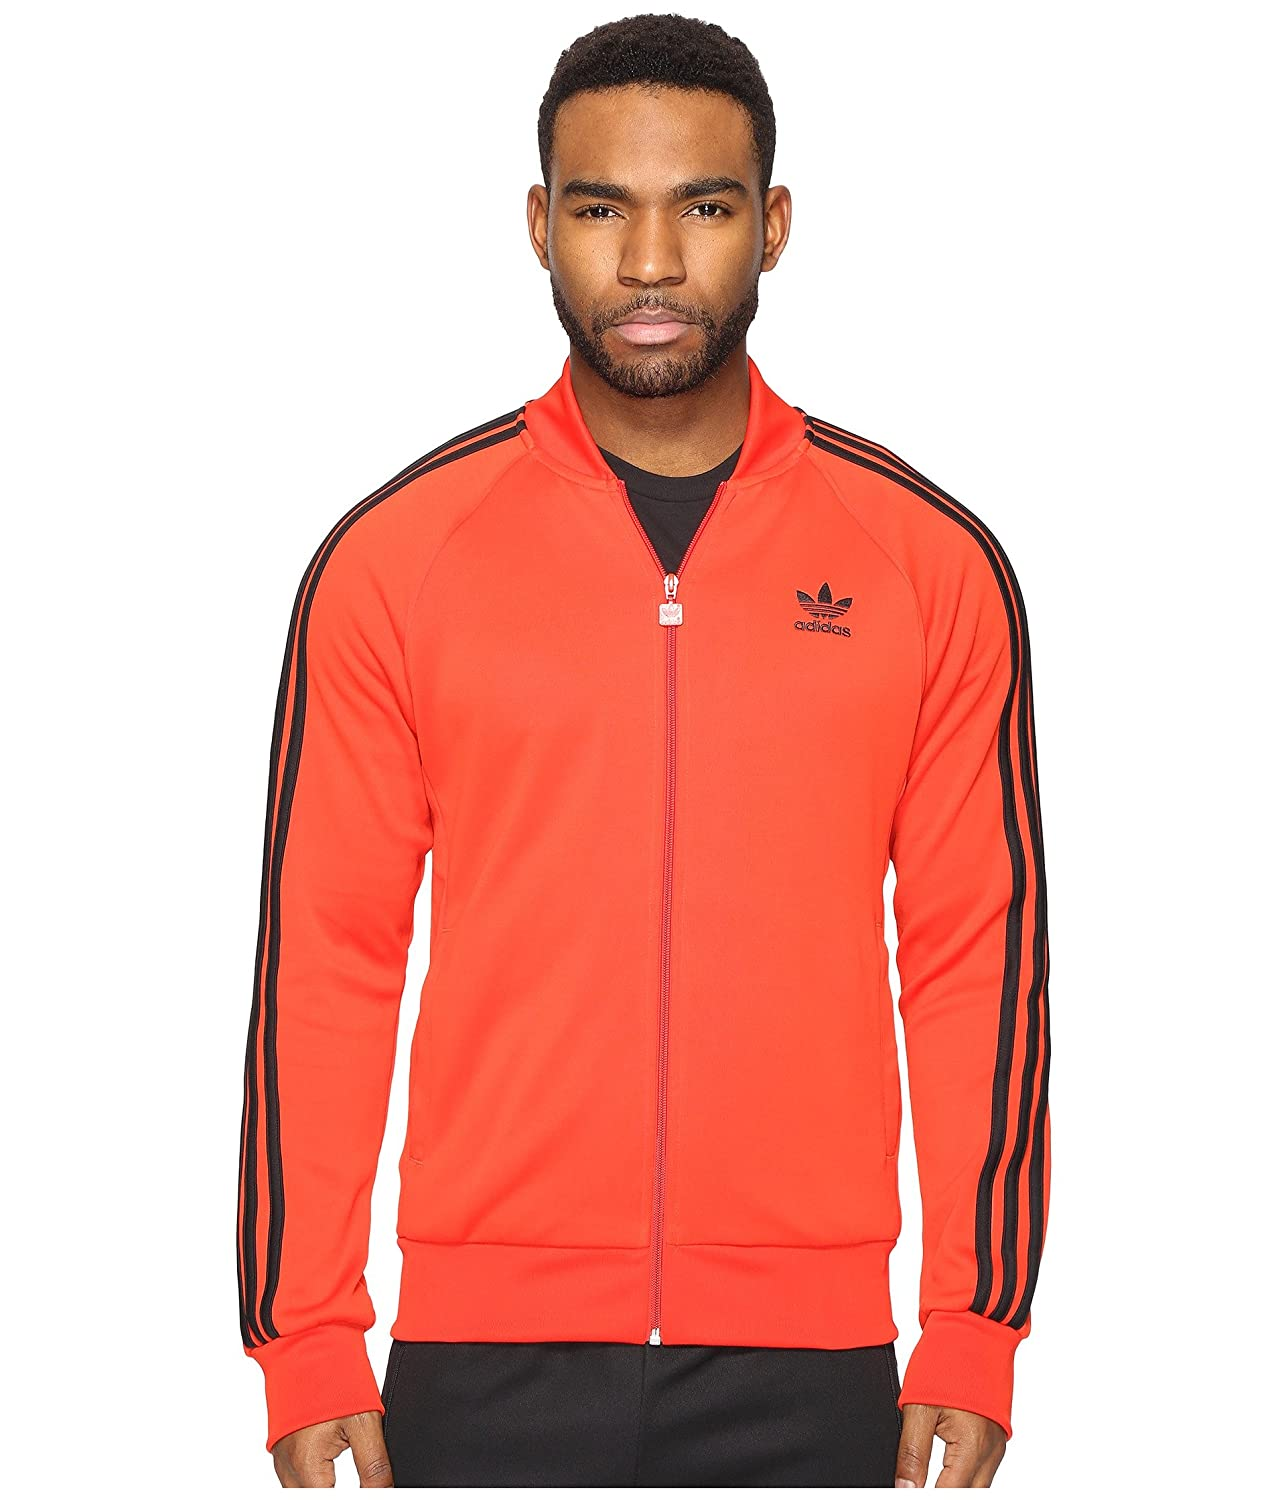 [アディダス] adidas Originals メンズ Superstar Track Top ジャケット [並行輸入品] B06WLGT833 Small|Core Red Core Red Small